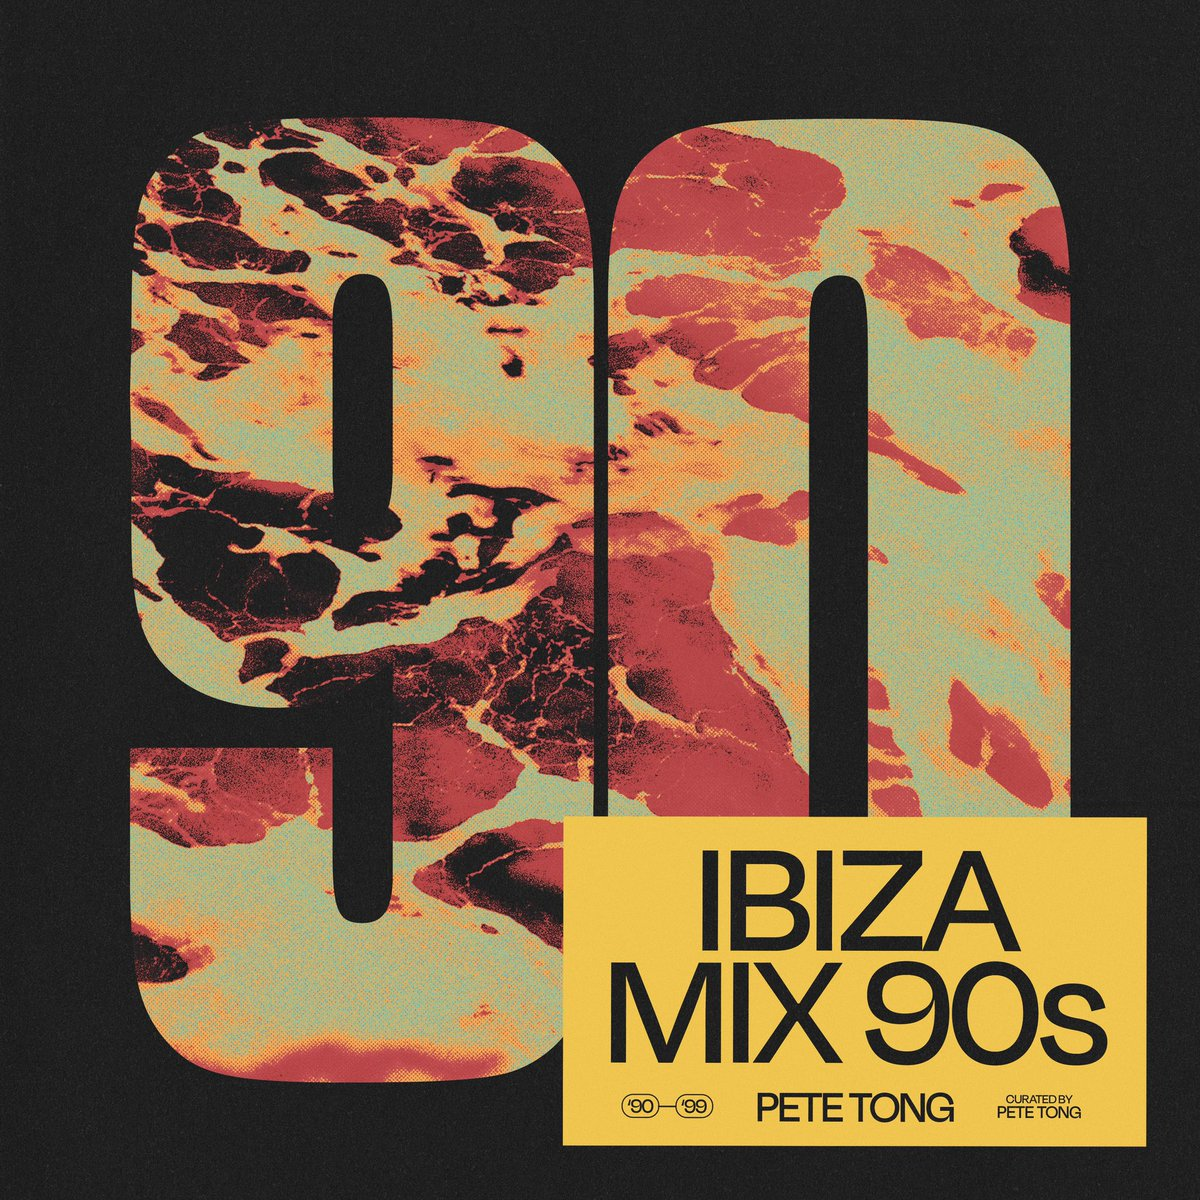 If you're an @AppleMusic subscriber, check out part 1 of my Ibiza Mix series here bit.ly/PTIBIZAMIX90s